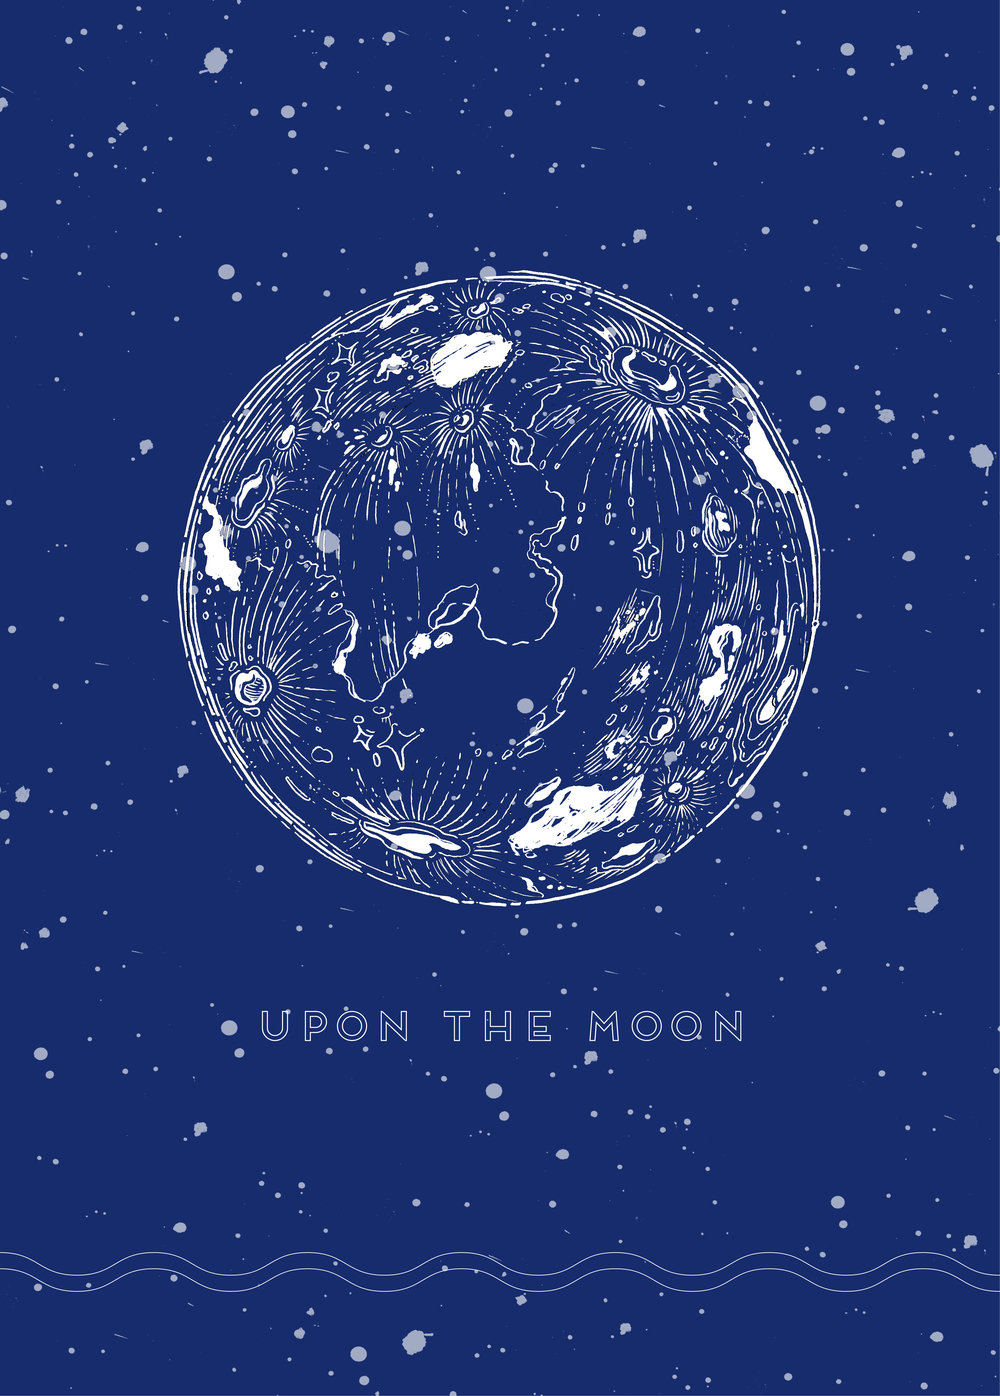 Upon The Moon_Love You To The Moon_artwork01.jpg